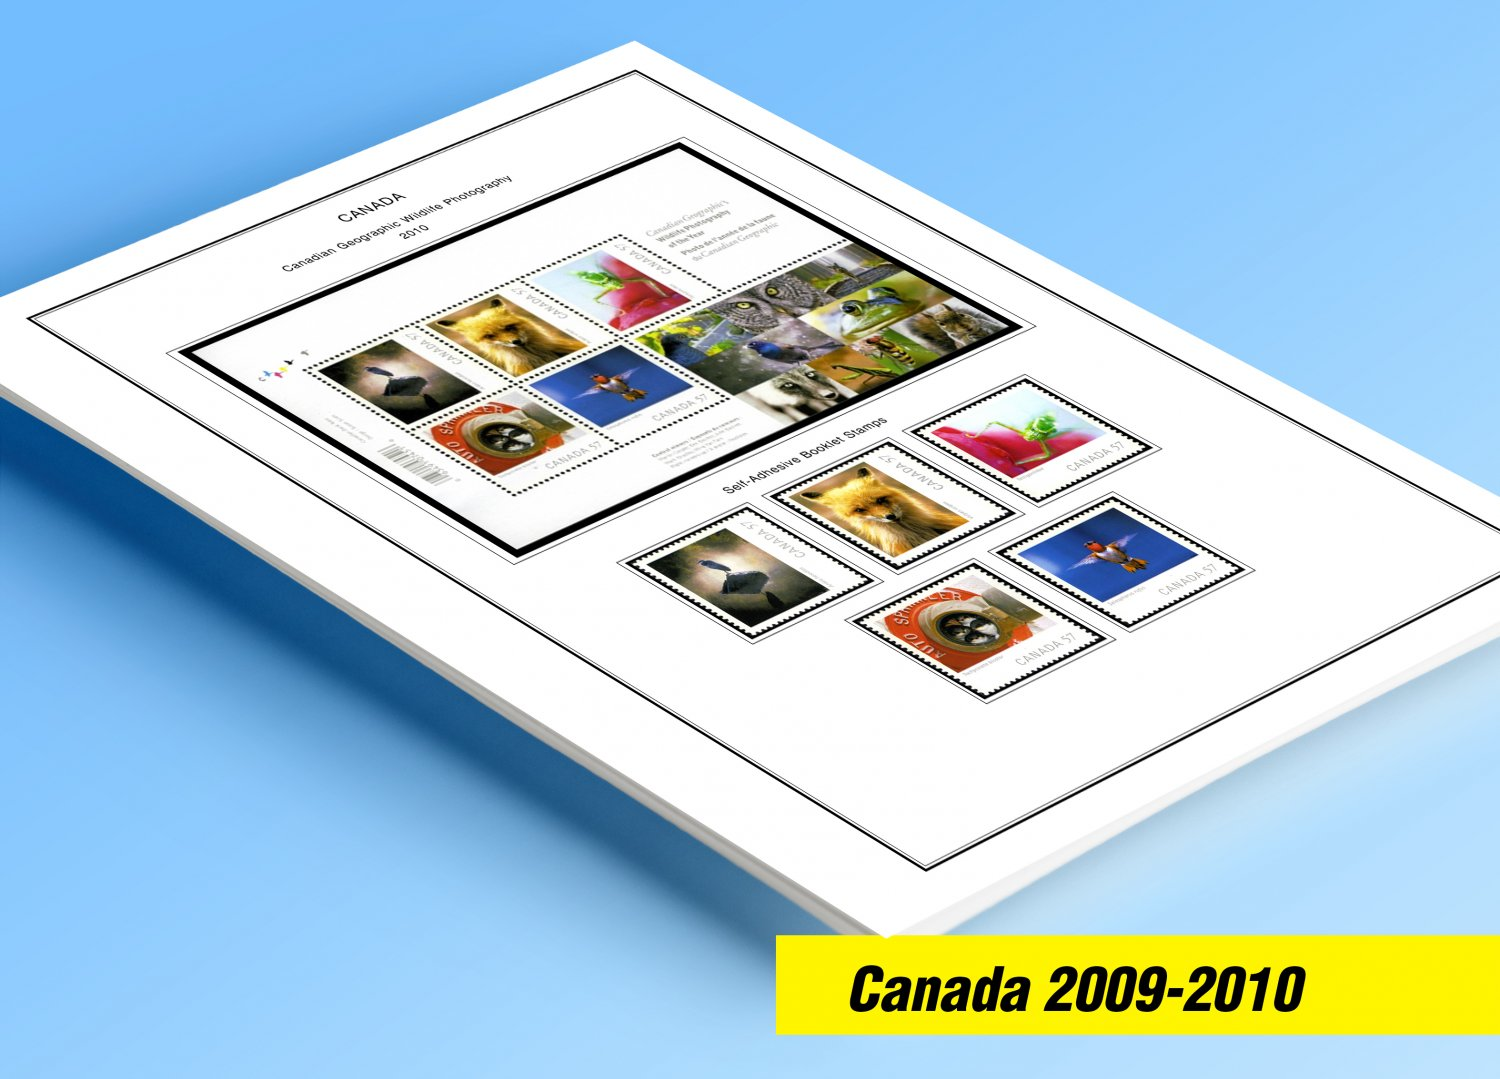 COLOR PRINTED CANADA 2009-2010 STAMP ALBUM PAGES (32 illustrated pages)